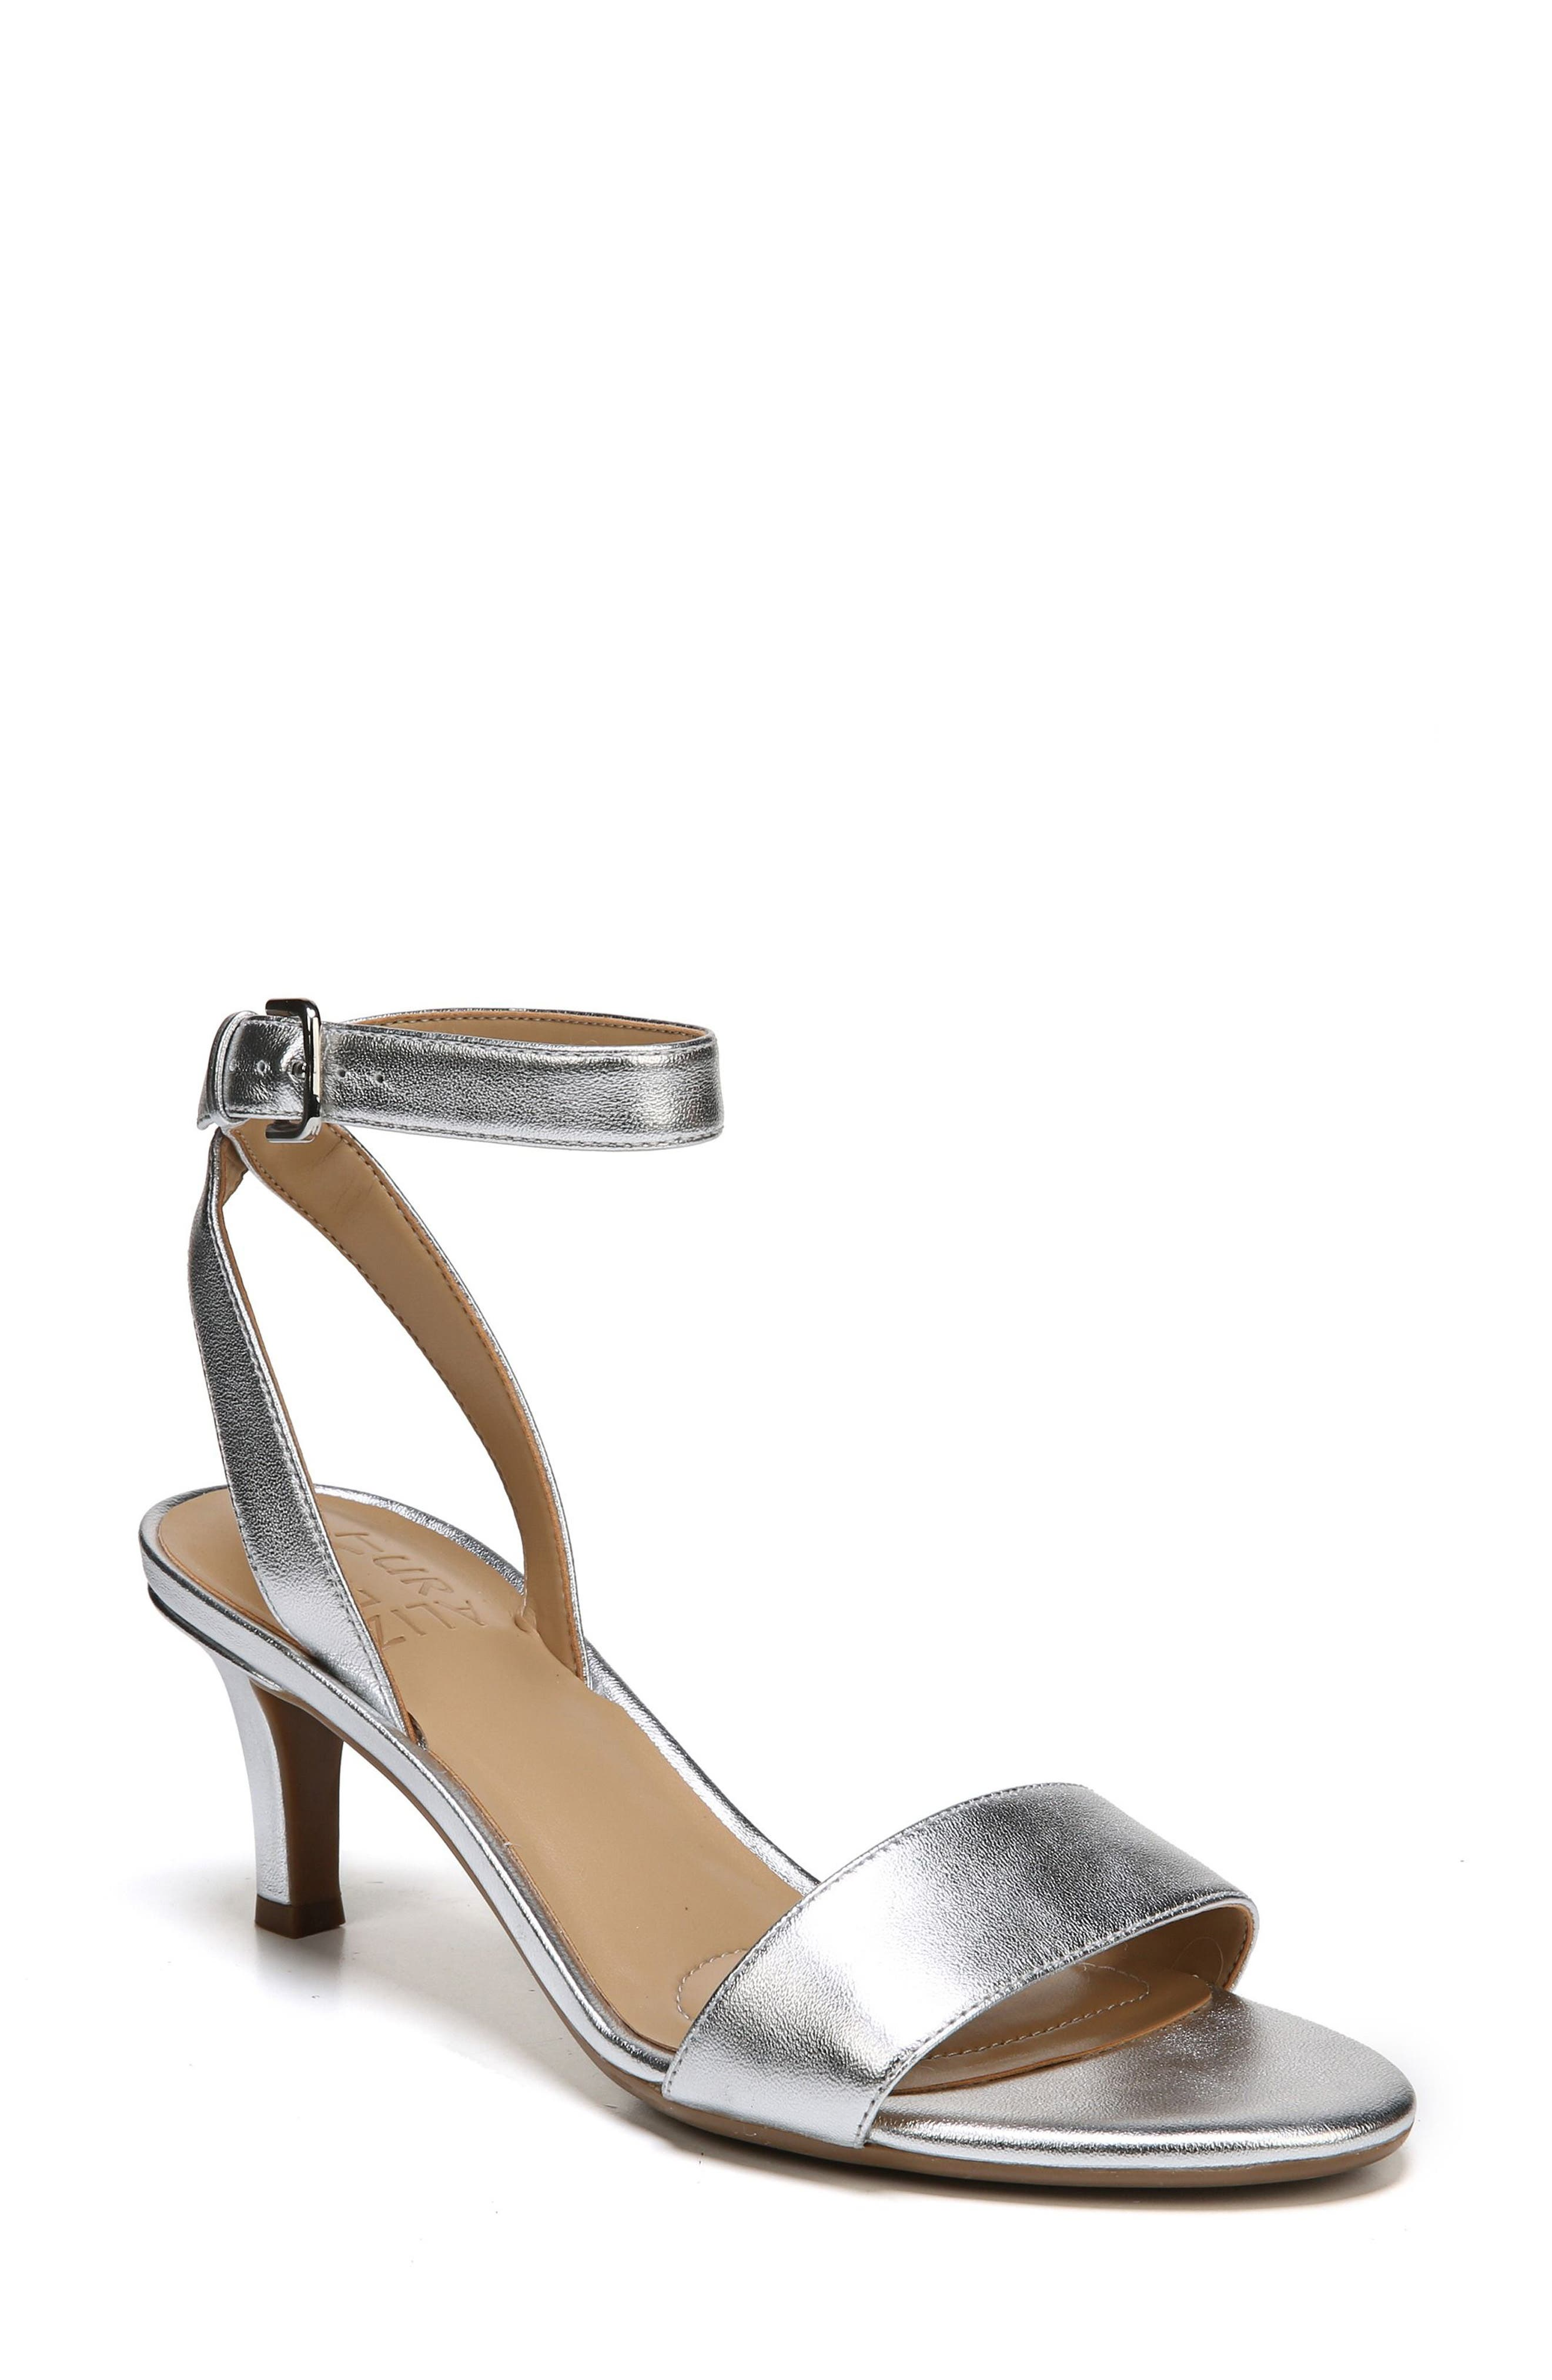 NATURALIZER Tinda Sandal, Main, color, SILVER LEATHER